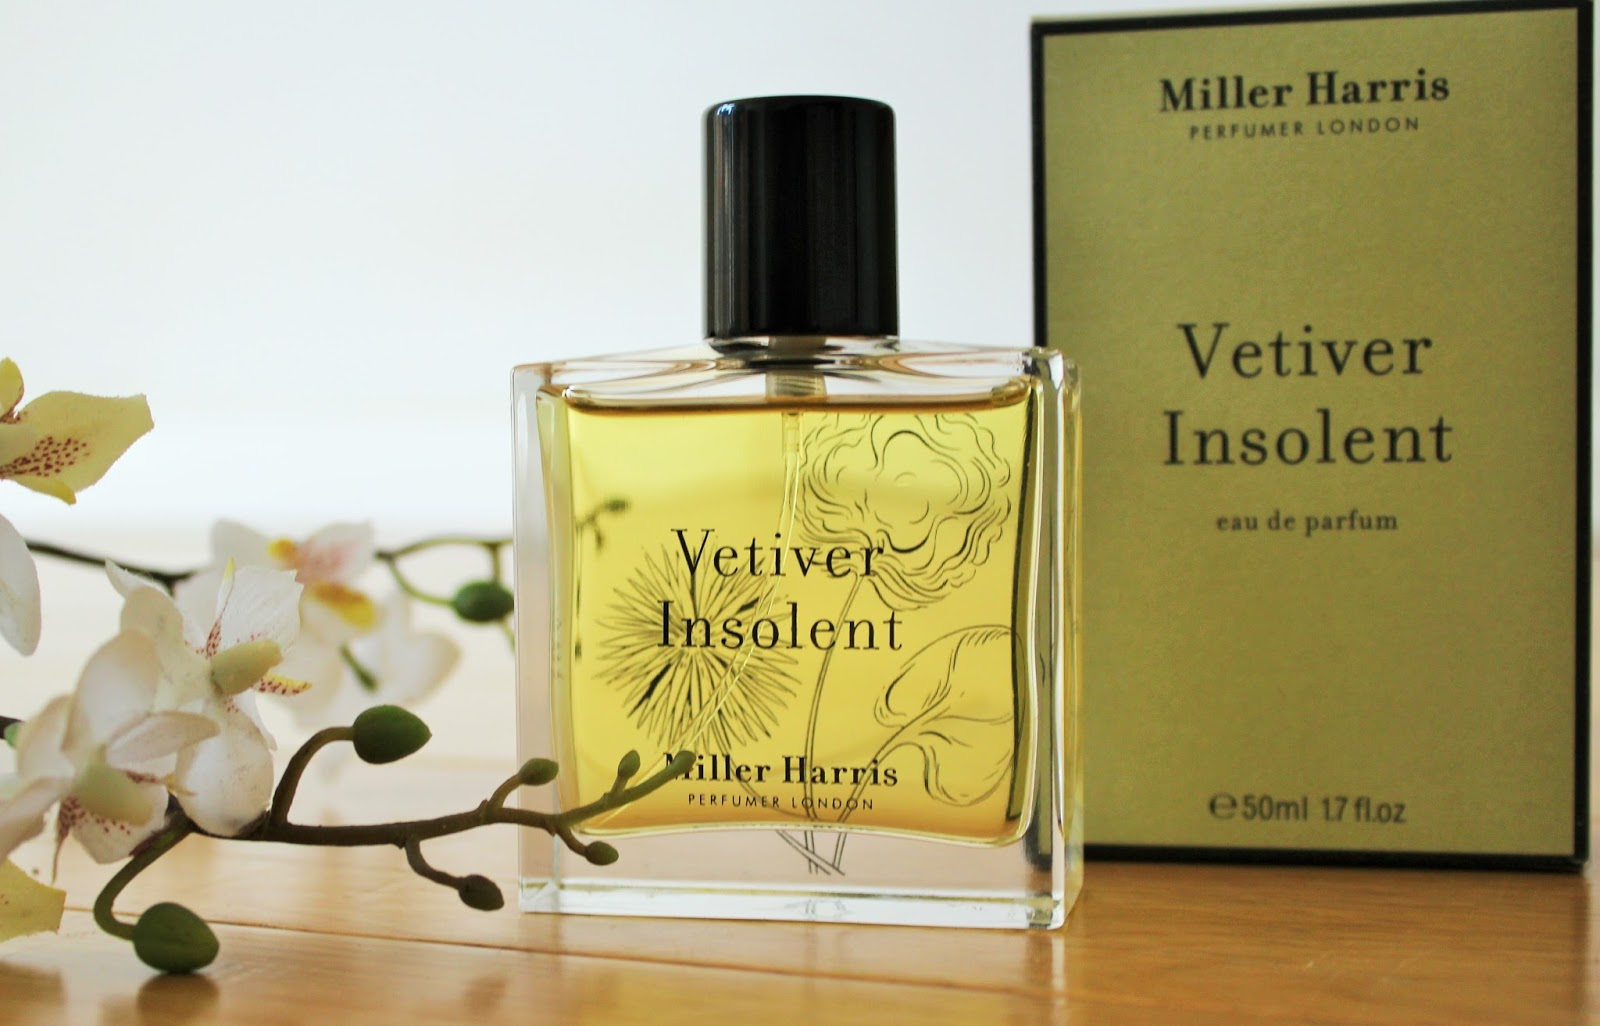 Perfume Review - Miller Harris Vetiver Insolent 1